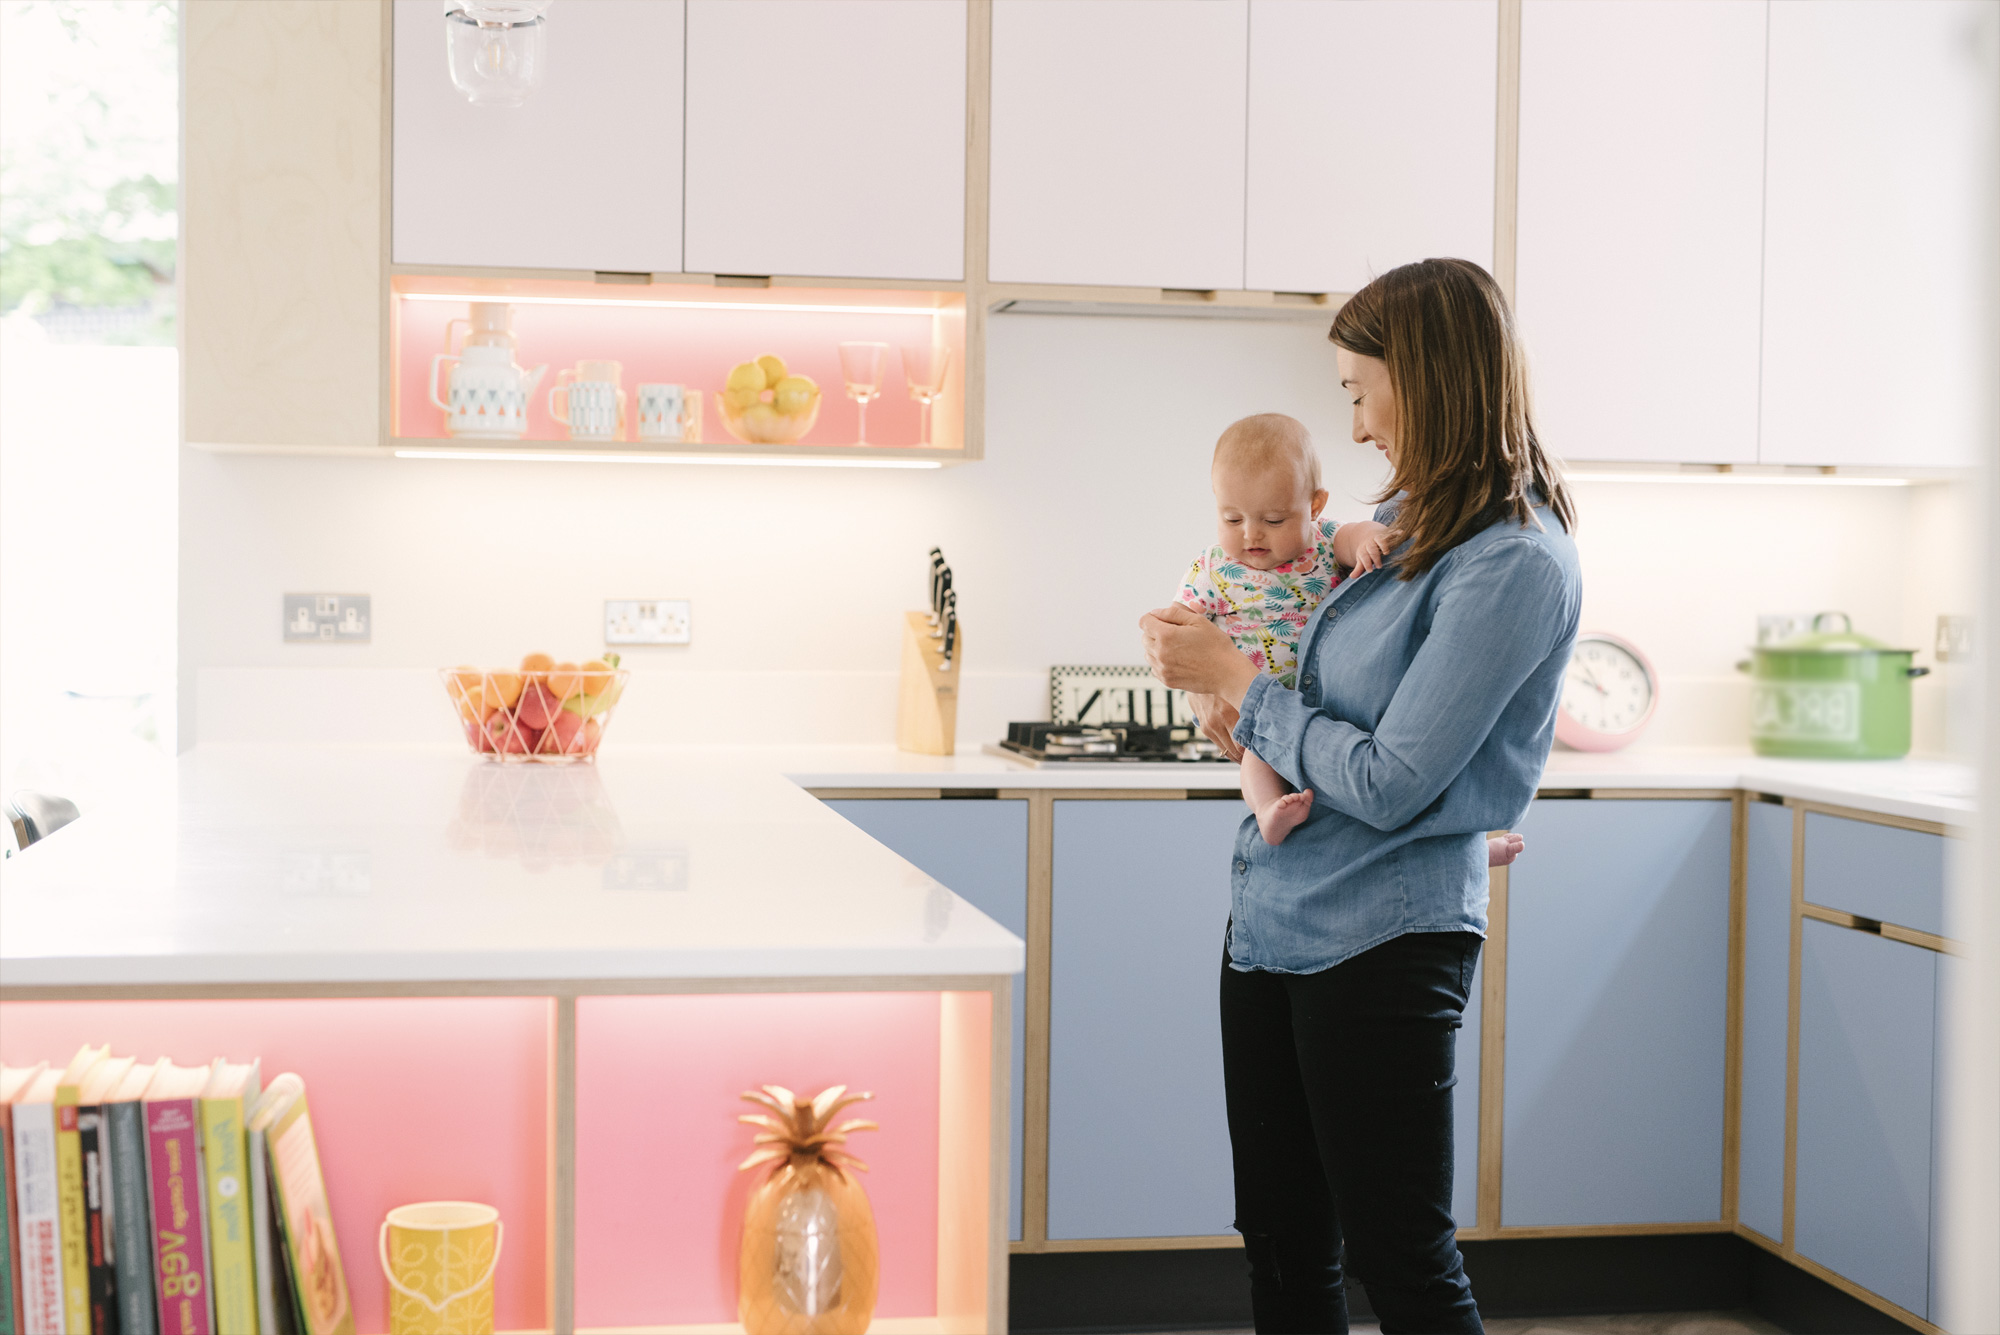 Mother and child in pink and blue plywood kitchen